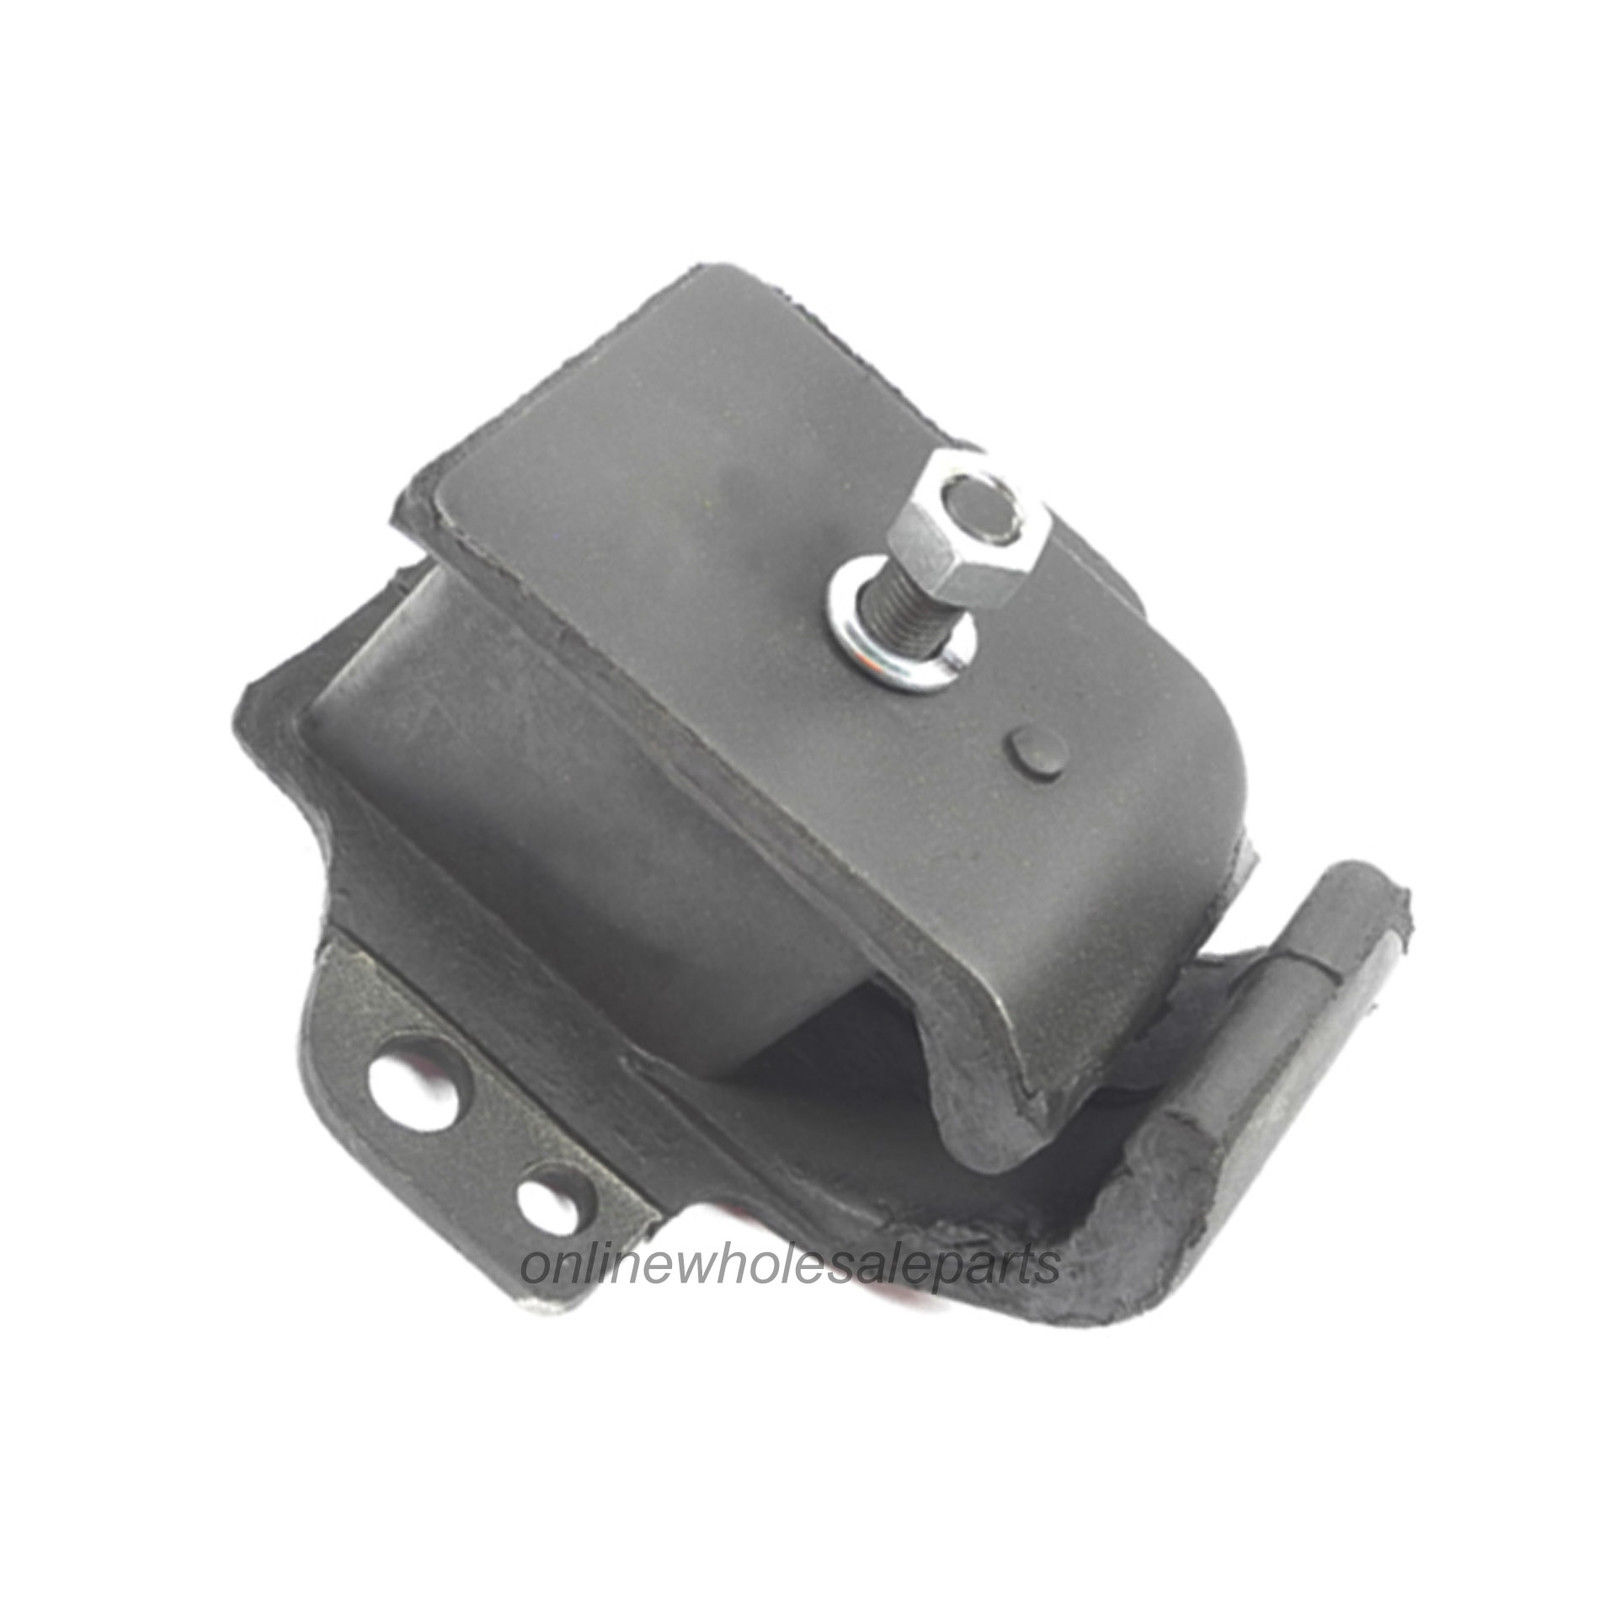 6377*2 6347 New Engine Motor Mount For Nissan Pathfinder Frontier M665